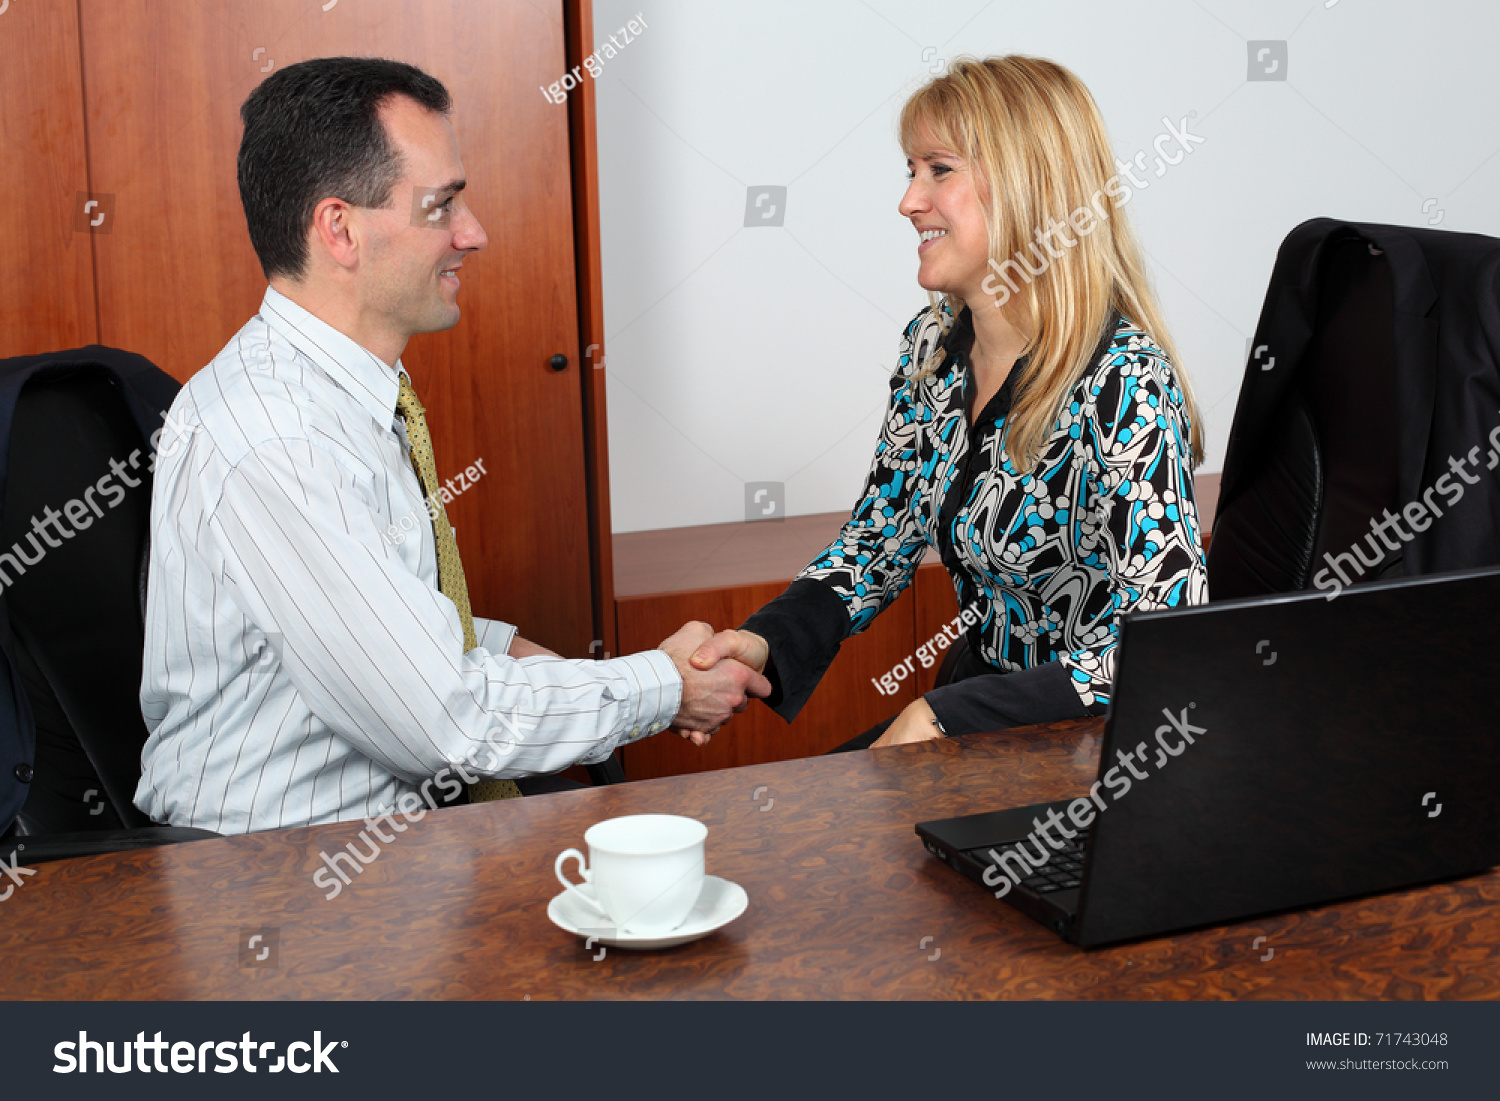 Business people shaking hands coming agreement stock photo 71743048 business people shaking hands coming agreement stock photo 71743048 shutterstock platinumwayz